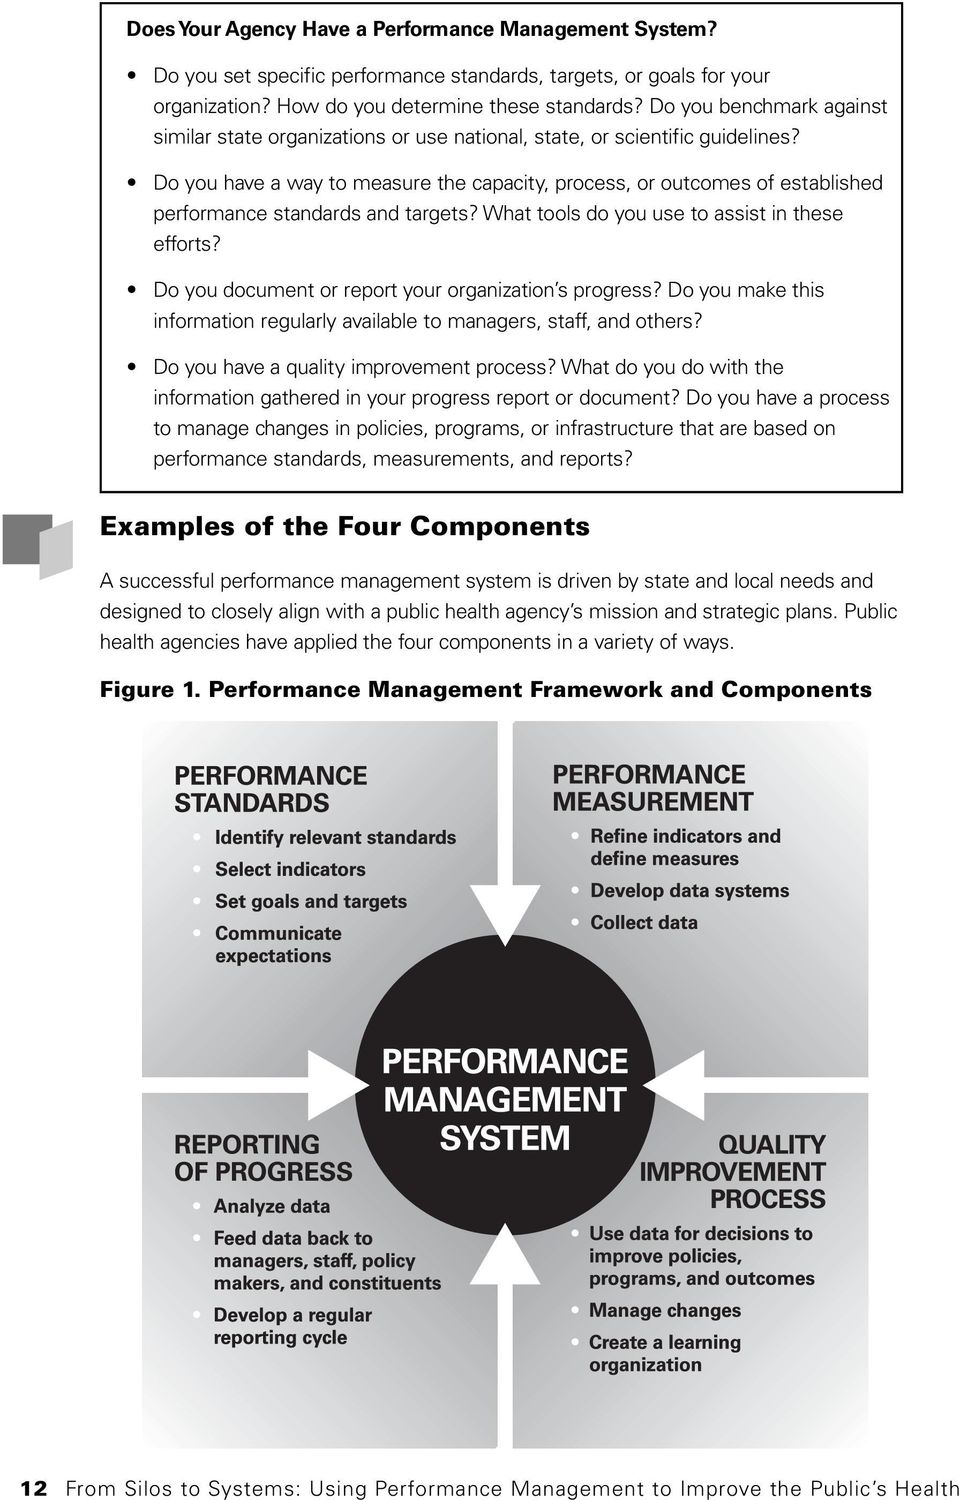 Do you have a way to measure the capacity, process, or outcomes of established performance standards and targets? What tools do you use to assist in these efforts?